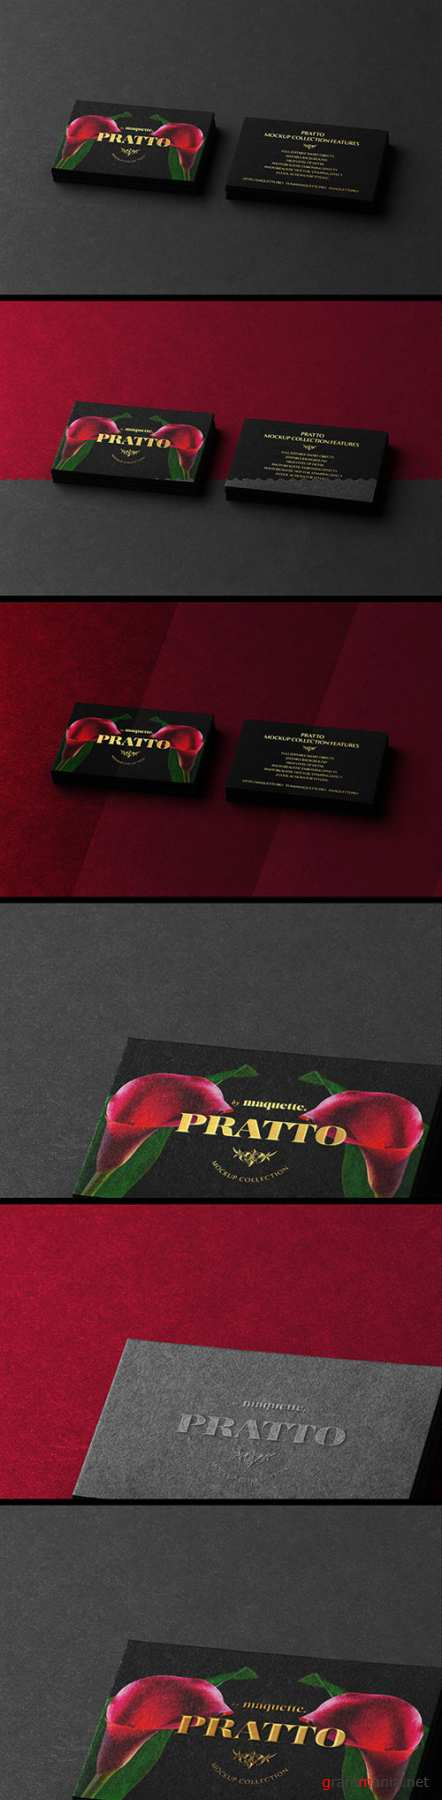 Two Black and Gold Business Cards Mockup 2 130437460 PSDT